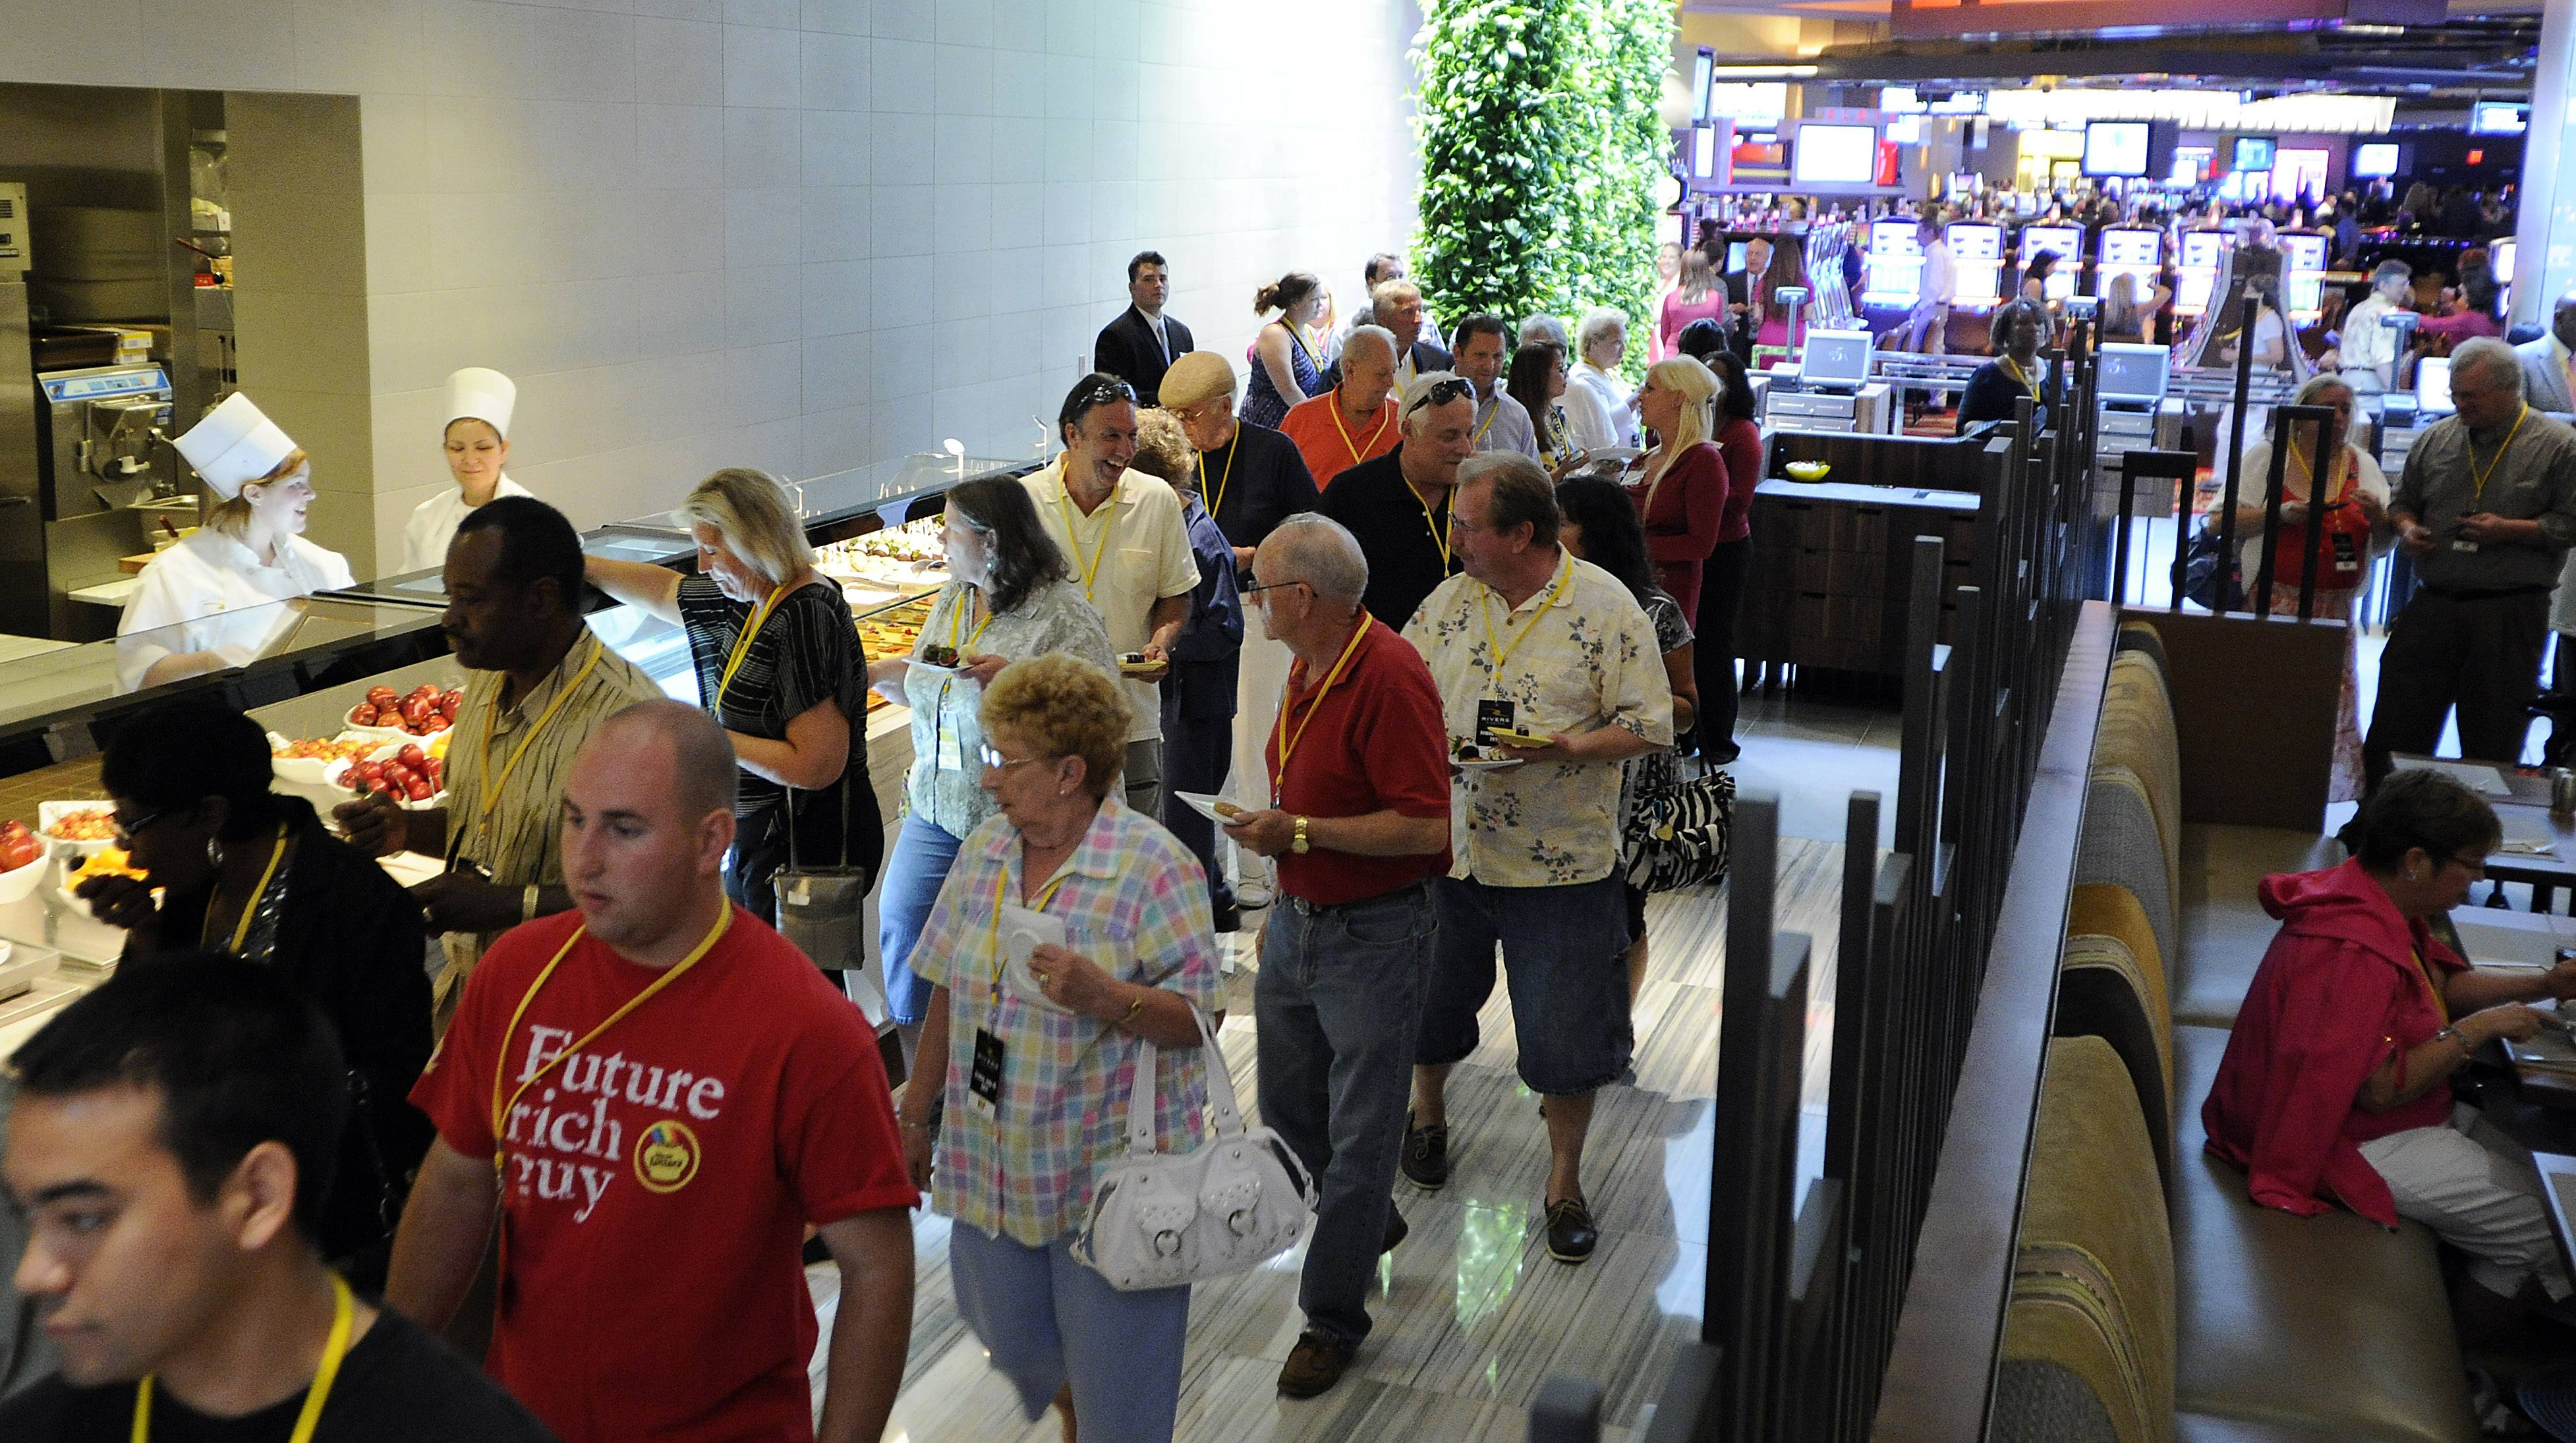 Thousands lined up for the buffet at the Rivers Casino in Des Plaines opened its doors for a VIP party on Friday.